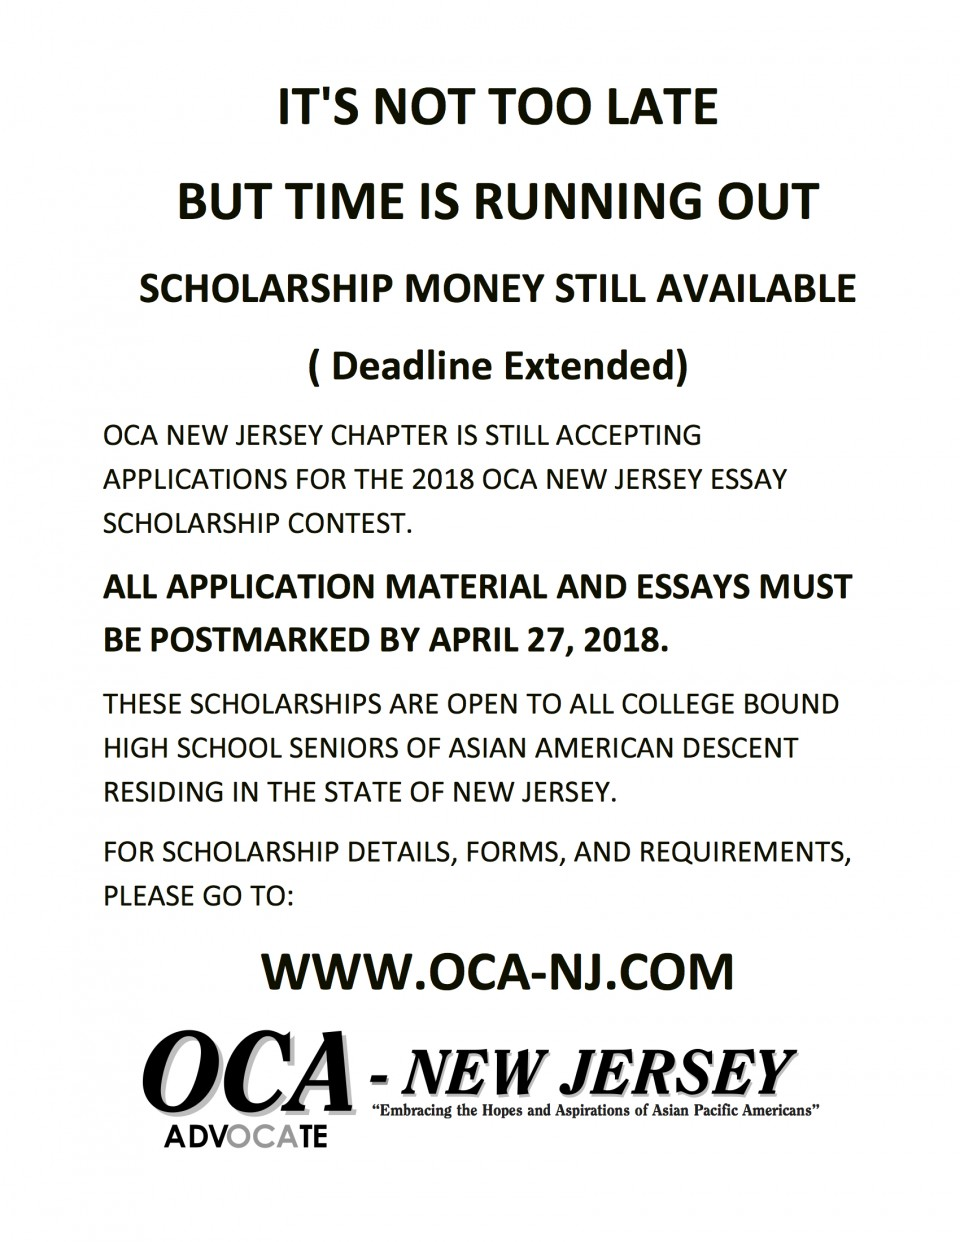 014 Essay Example Scholarships Entended Deadline Oca Nj Shocking 2018 Canada 2019 No For High School Juniors 960